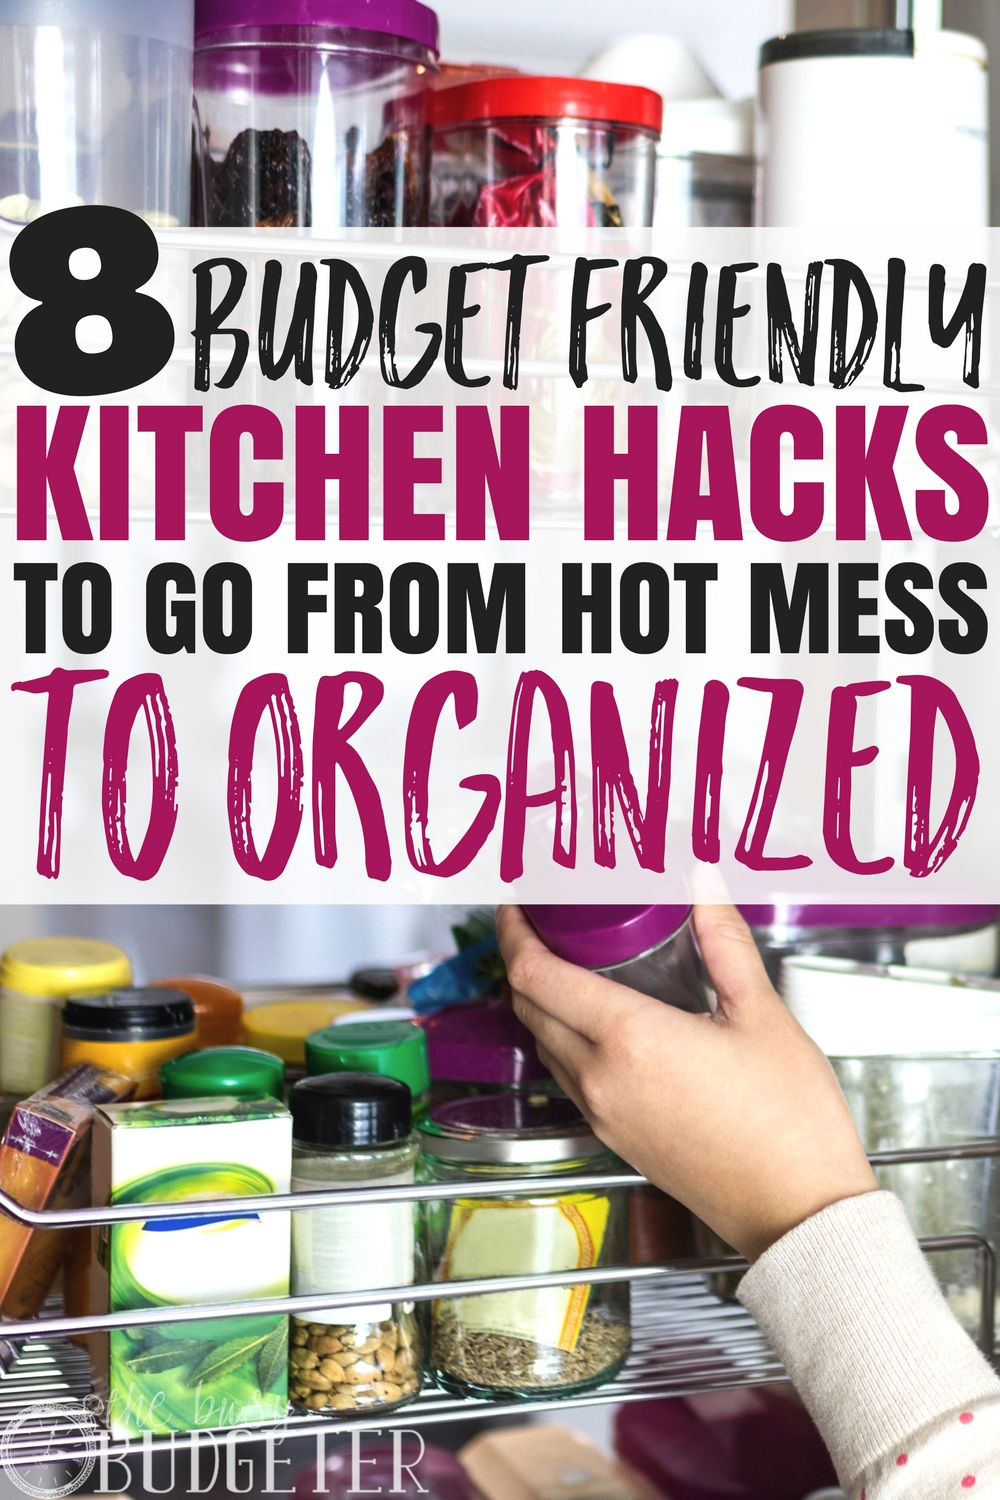 Before these kitchen organization hacks I would literally get anxiety walking into my hot mess of a kitchen. These easy kitchen hacks not only save money but also save a ton of TIME and helps me cook meal faster!!